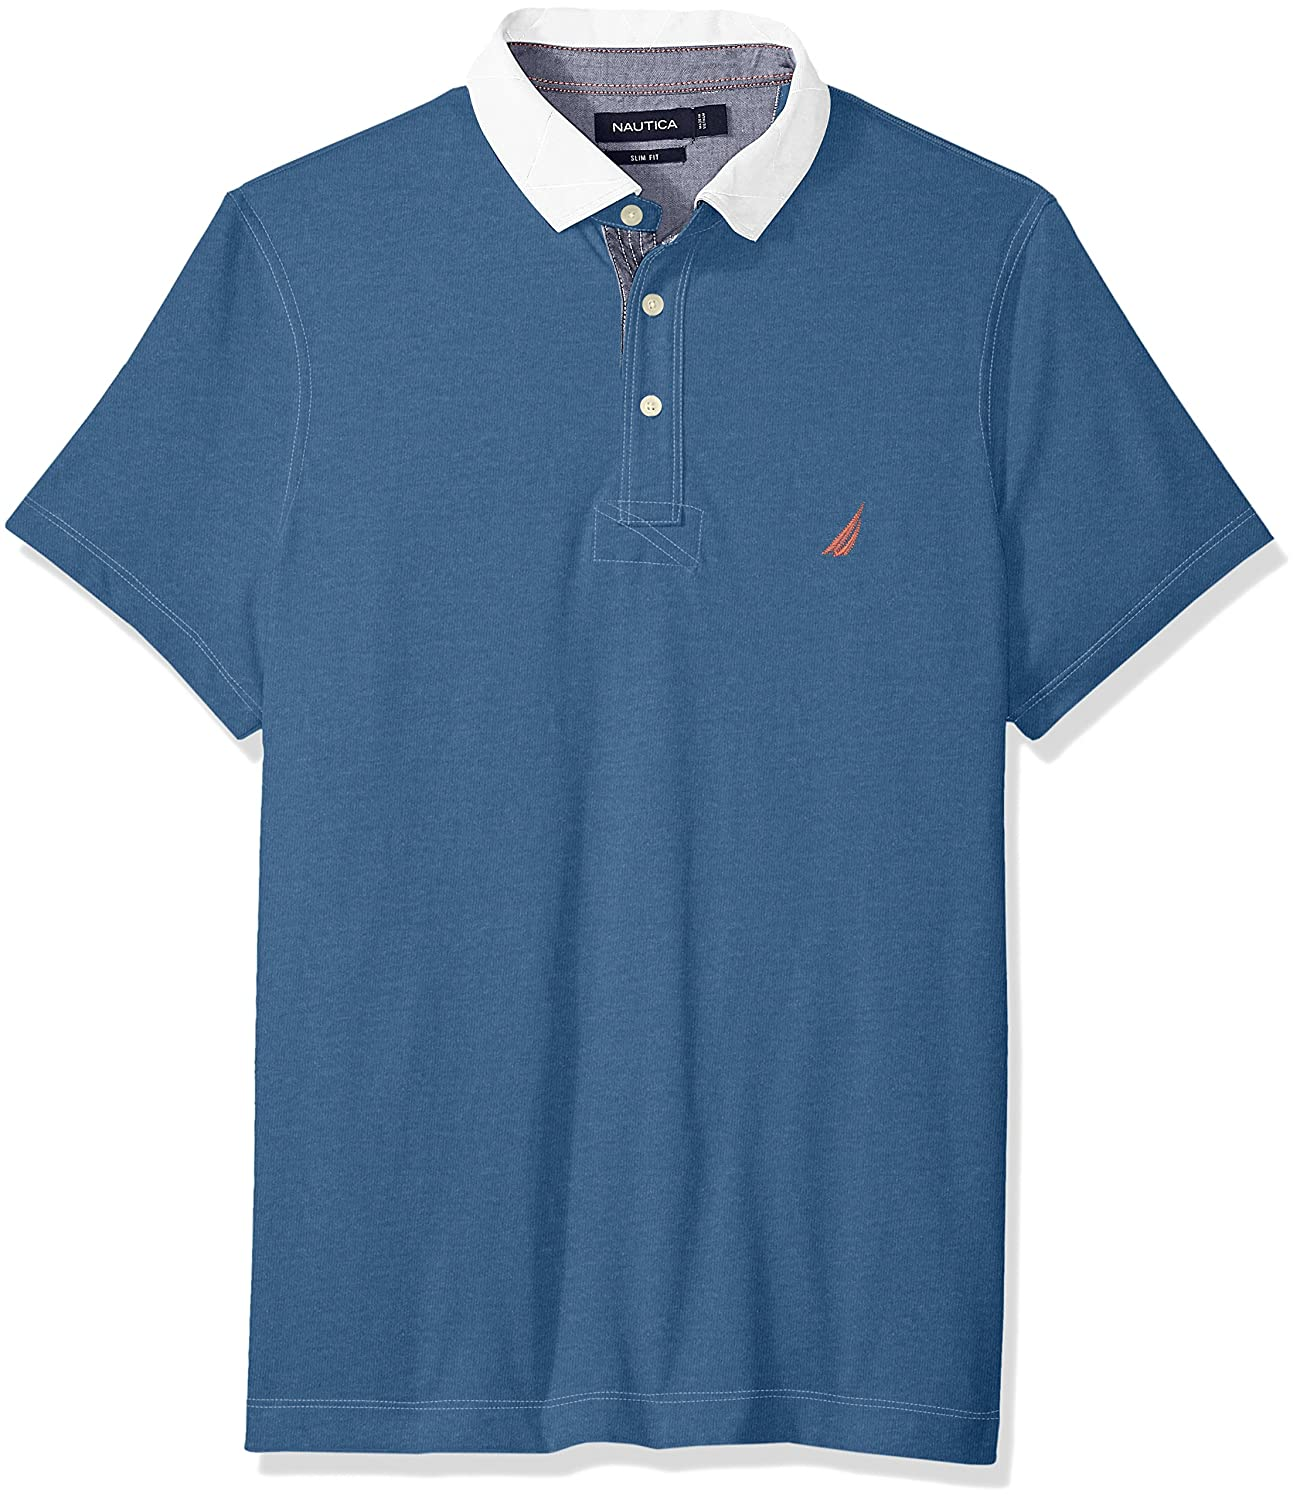 Vintage Shirts – Mens – Retro Shirts Nautica Mens Short Sleeve Slim Fit Vintage Heritage Look Polo Shirt $69.50 AT vintagedancer.com